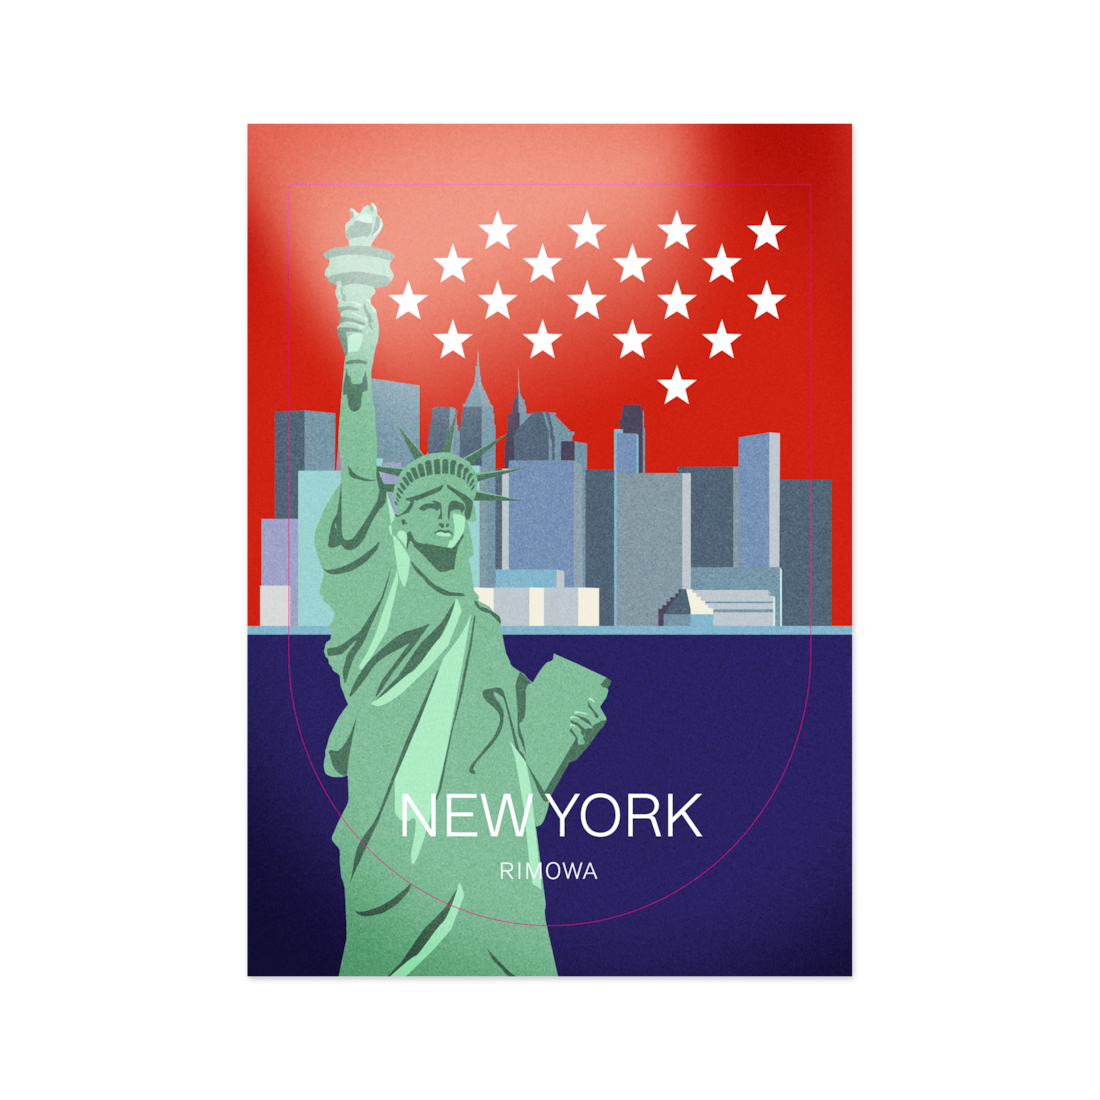 New York - Stickers